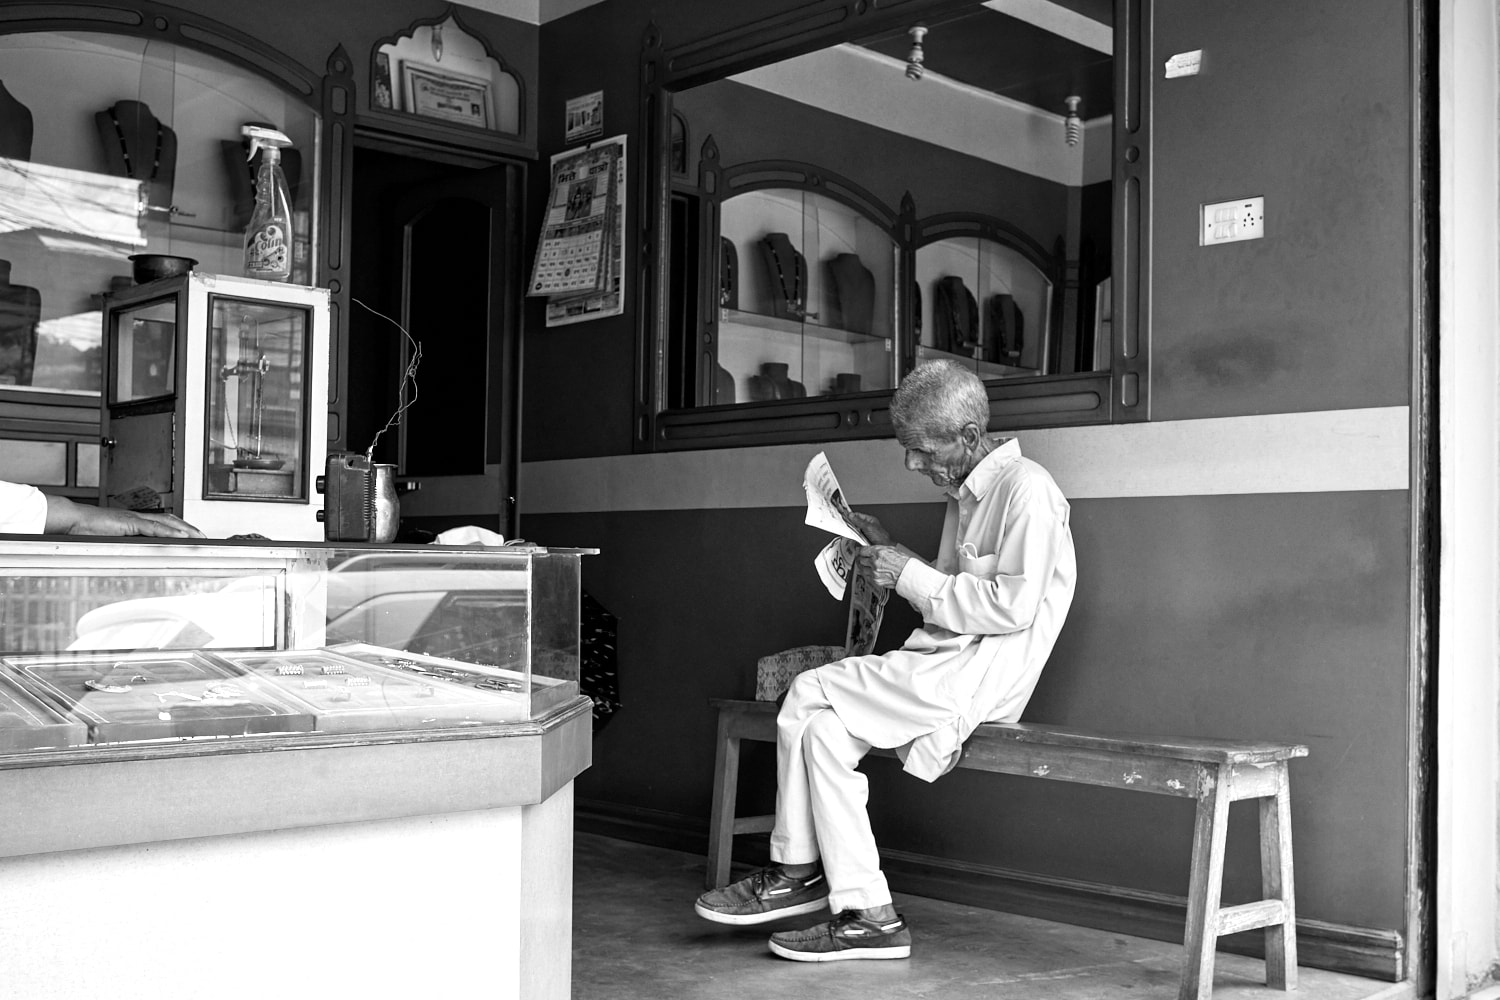 July 2021, Pokhara, Nepal: An elderly man reads a newspaper inside a shop as news plays on a radio with makeshift antenna